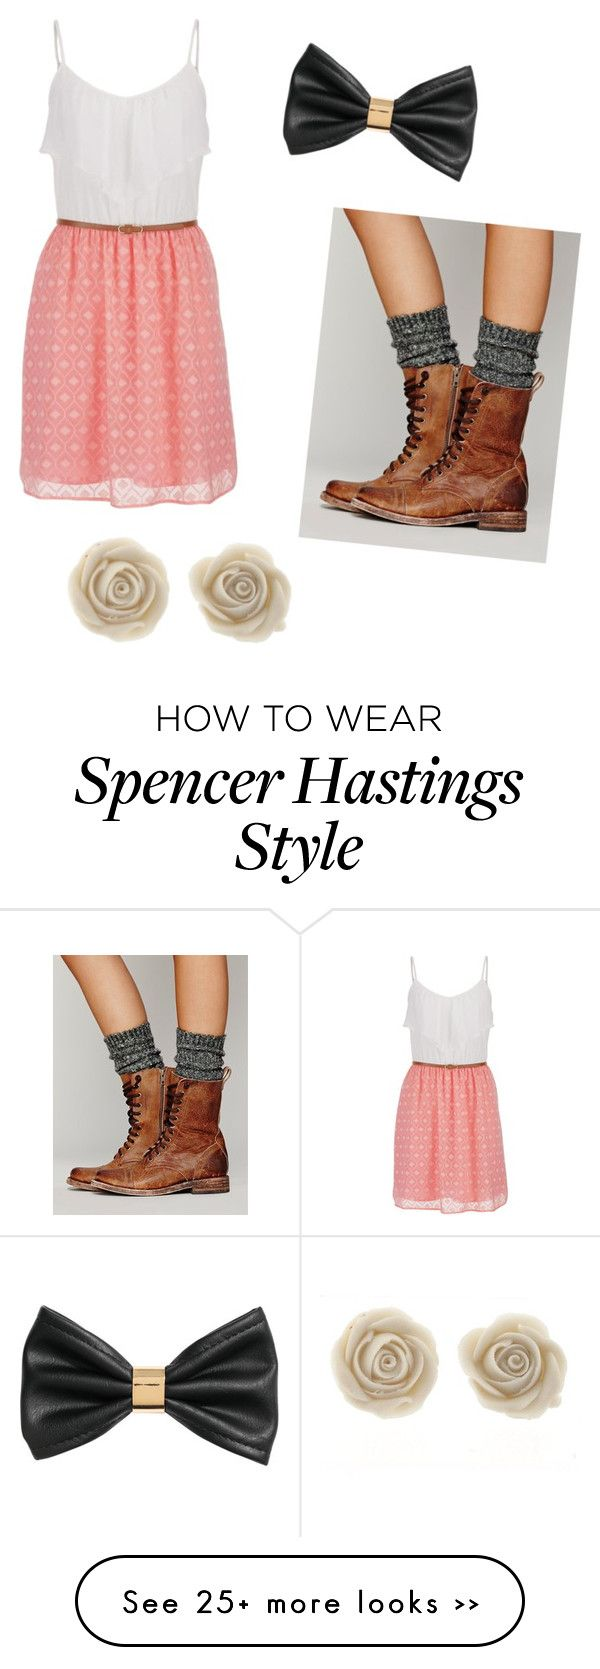 """Spencer Hastings"" by lauramshaw on Polyvore"